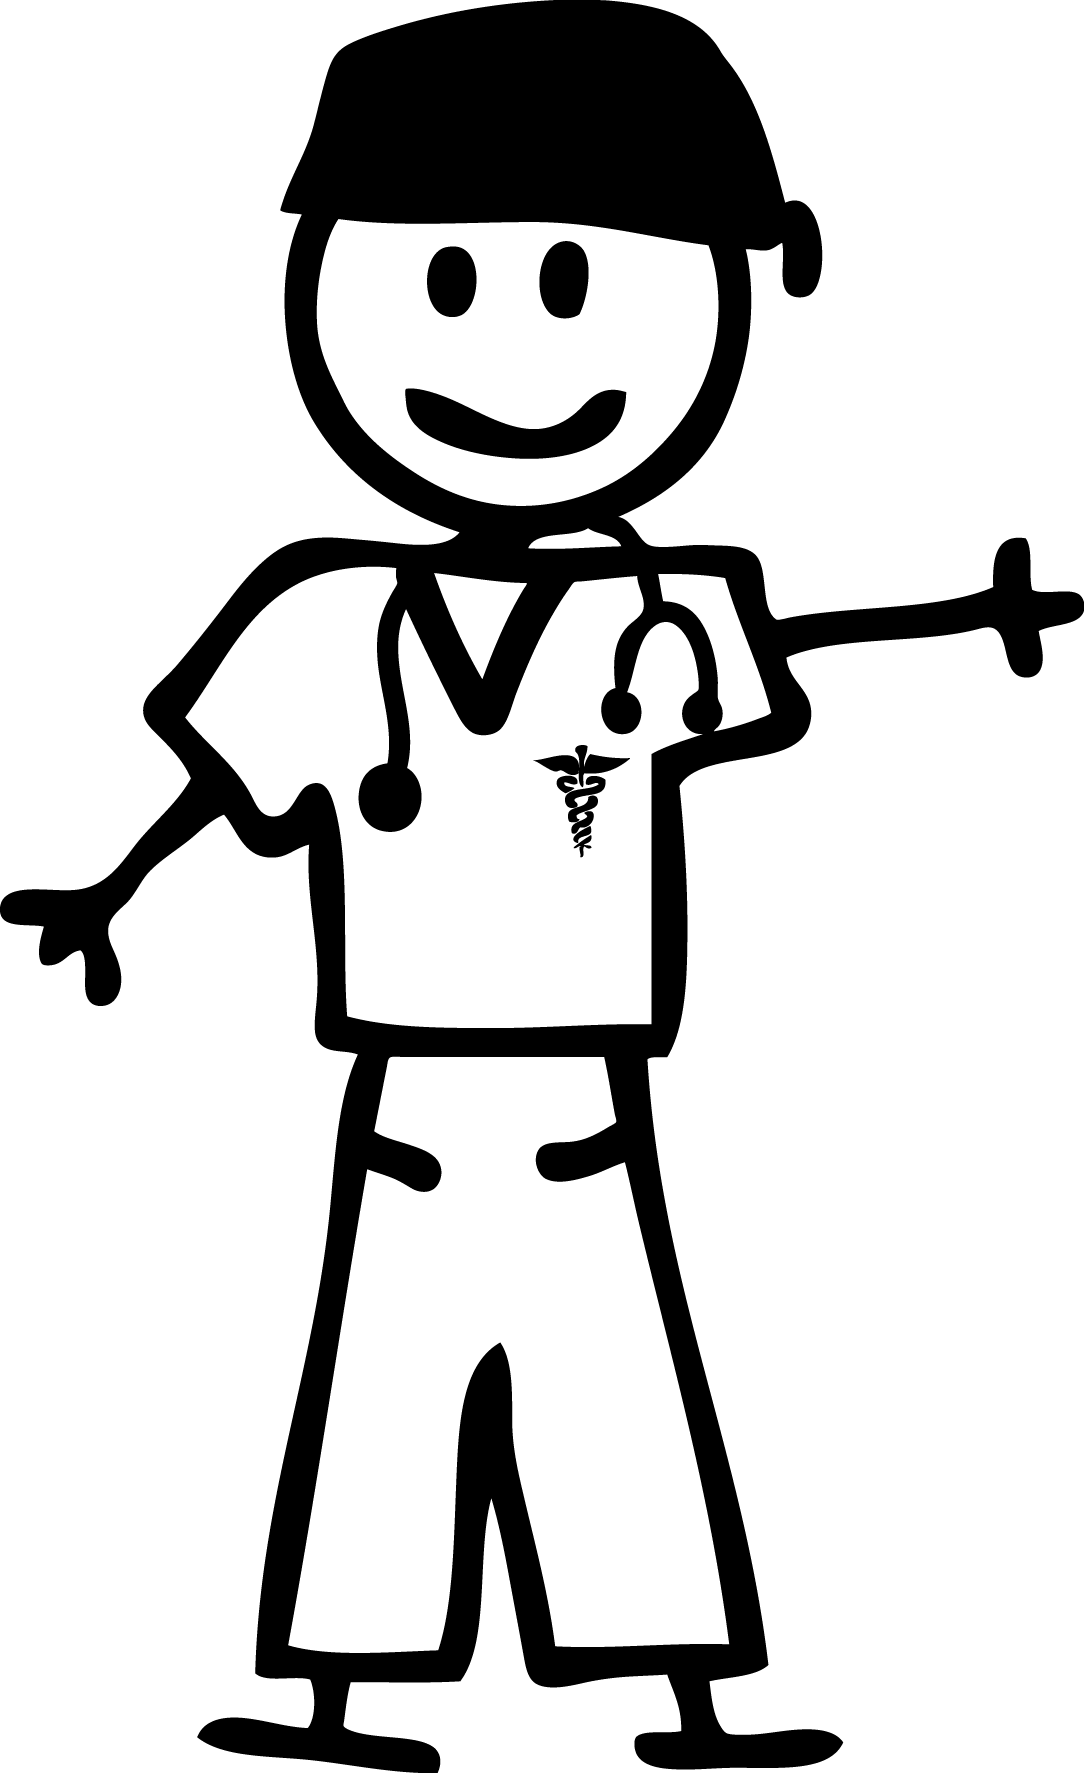 hight resolution of busy nurse cliparts 2504333 license personal use